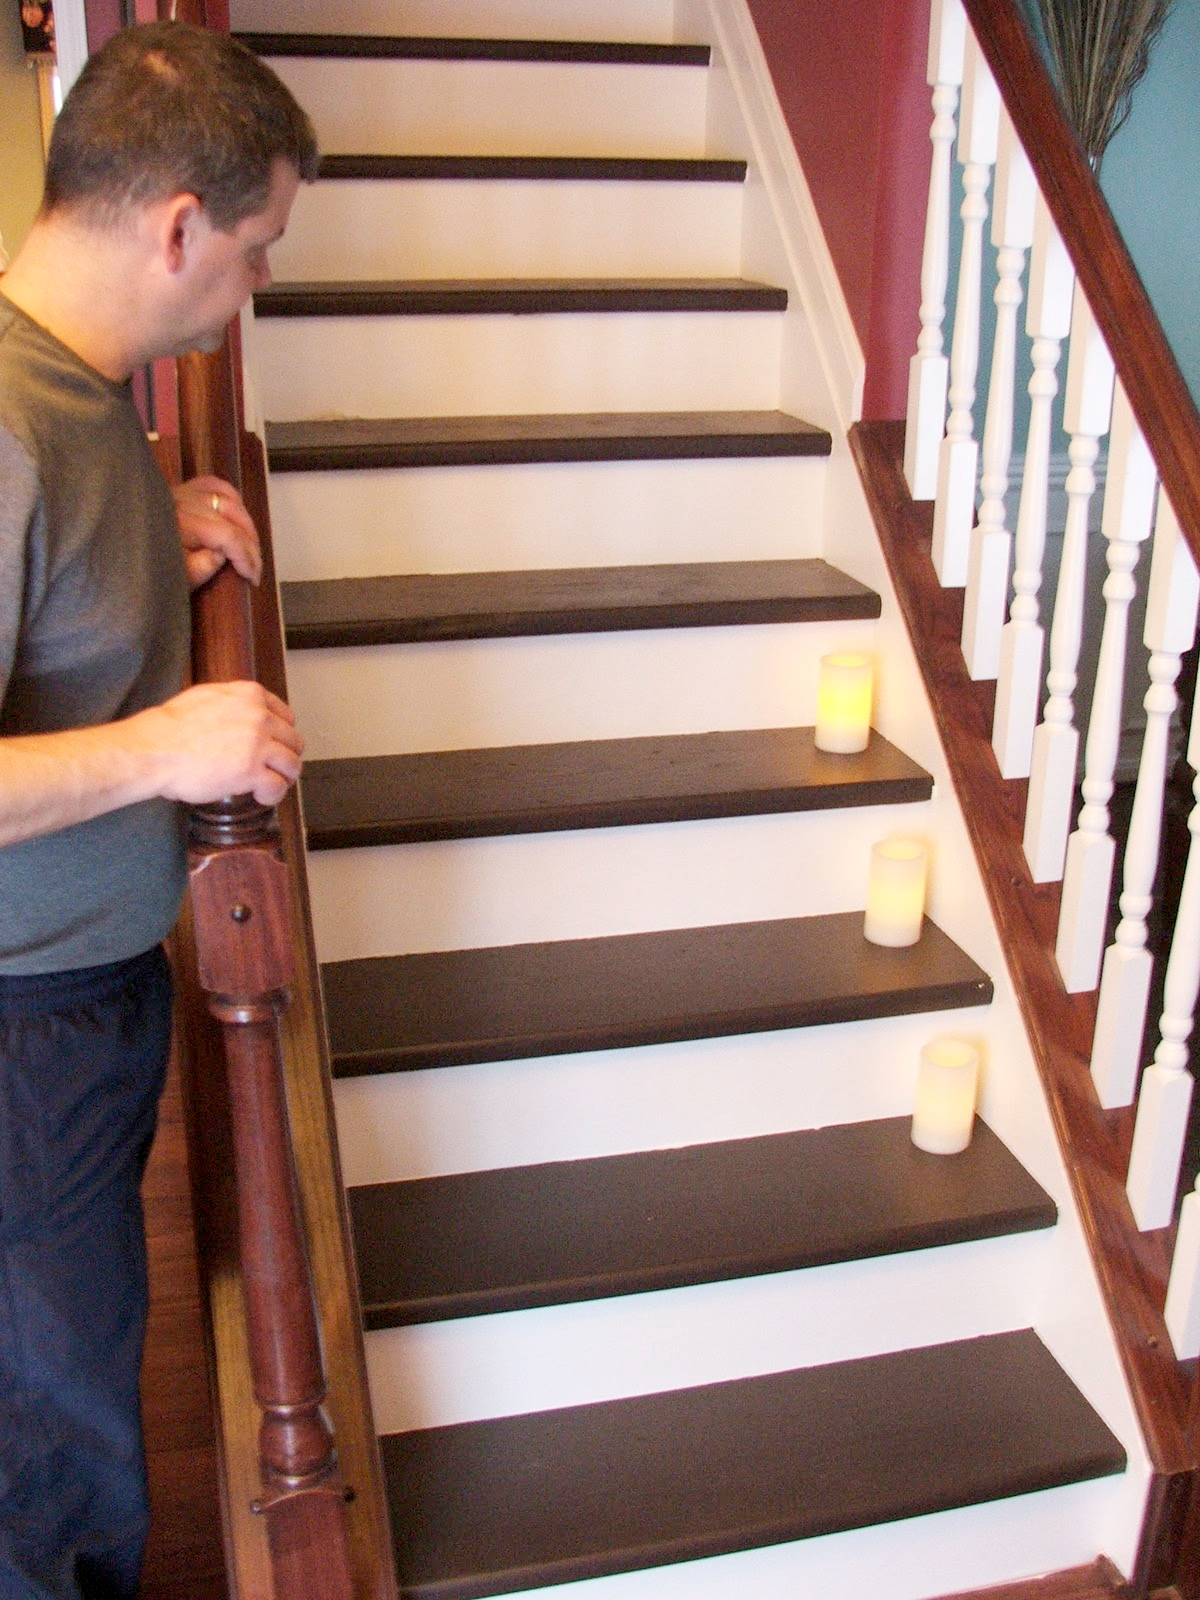 Remodelaholic Under 100 Carpeted Stair To Wooden Tread Makeover Diy Within Stair Protectors Wooden Stairs (#13 of 20)